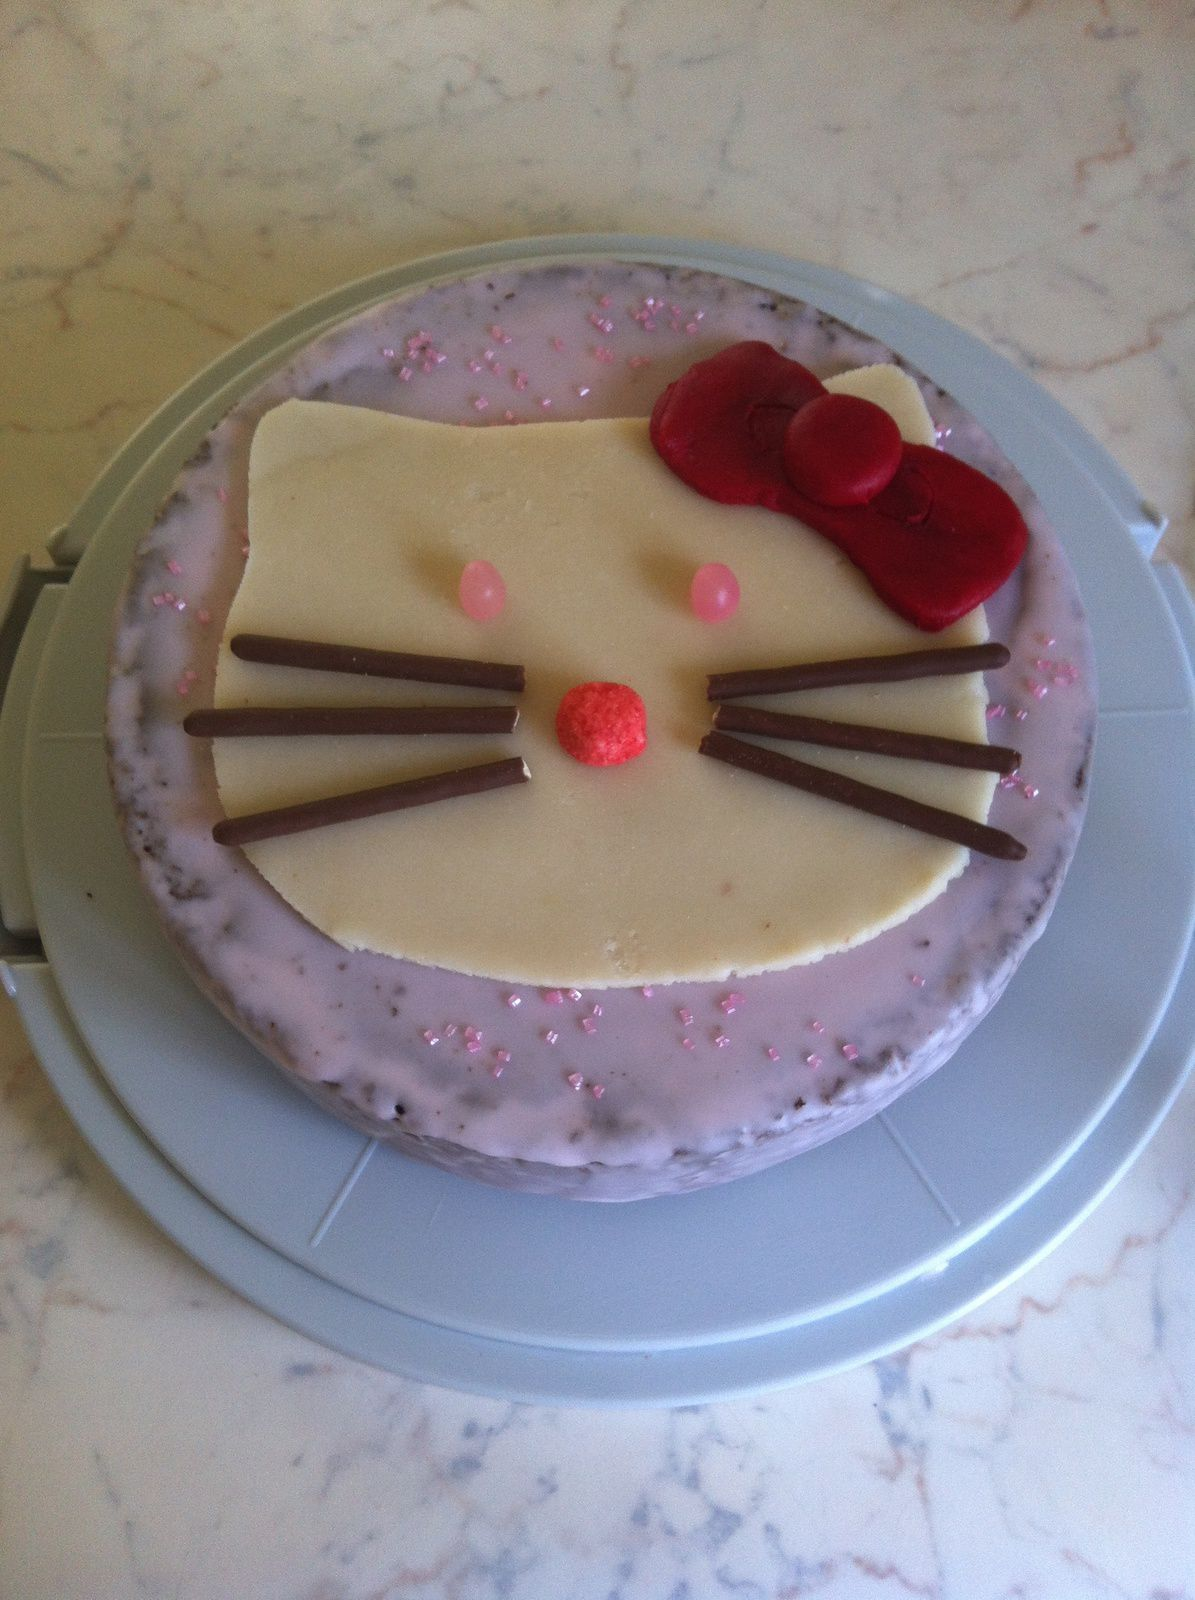 gateau au chocolat hello kitty